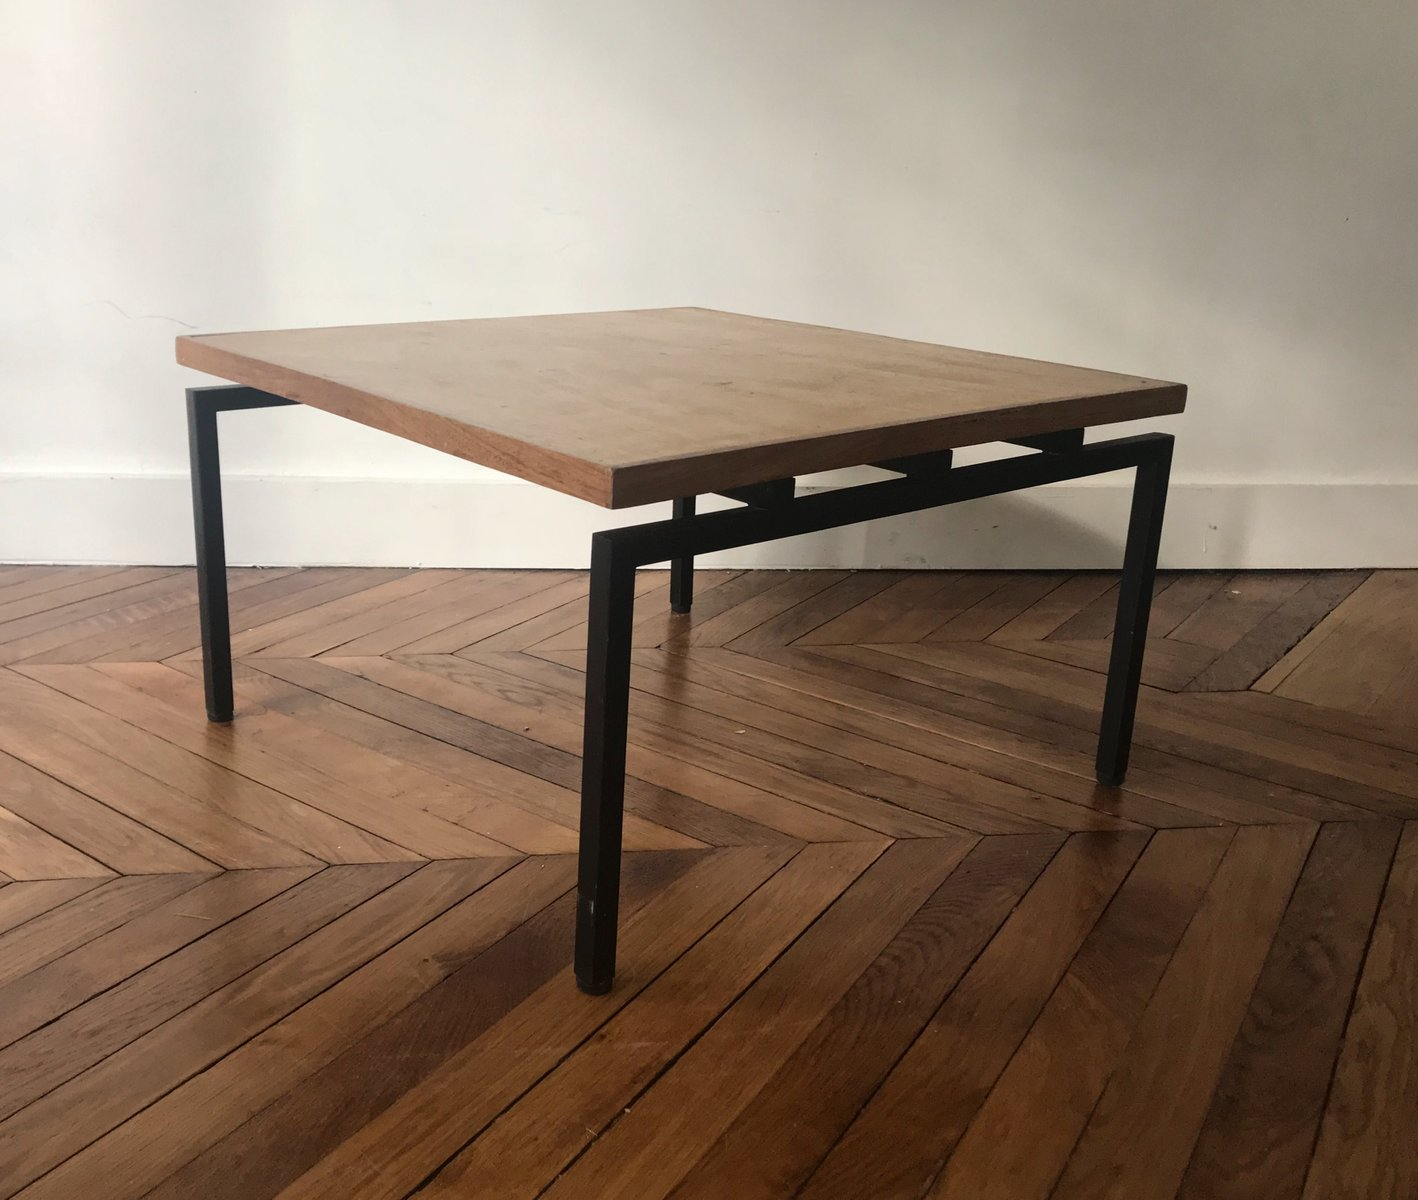 Coffee Table 1950s: Constructivist Coffee Table, 1950s For Sale At Pamono